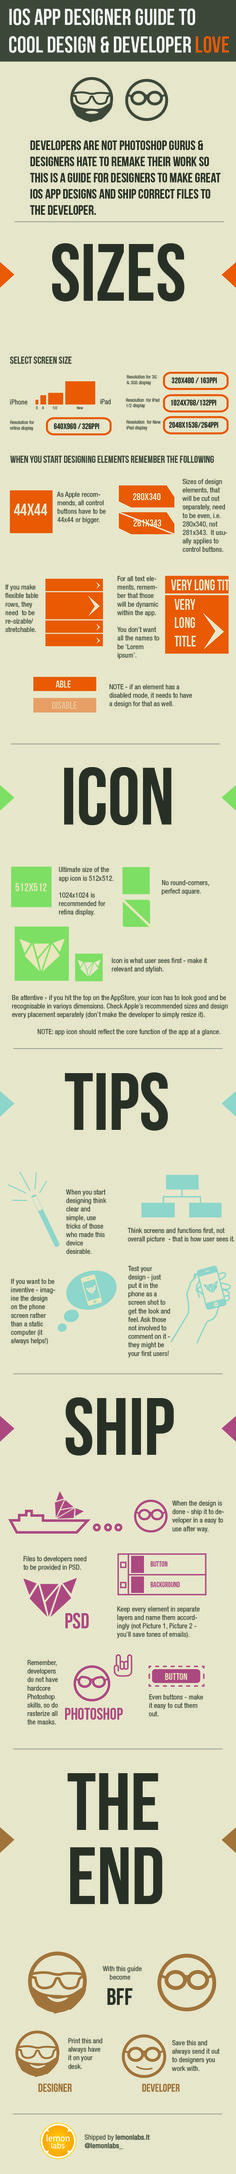 Infographic: A Guide On How To Create Great iOS App Designs. Lemon Labs has created a handy guide on how to make great iOS app designs. Ios App Design, Mobile App Design, Interface Design, Mobile Ui, User Interface, Iphone Design, Iphone Mobile, Flat Design, Interaktives Design